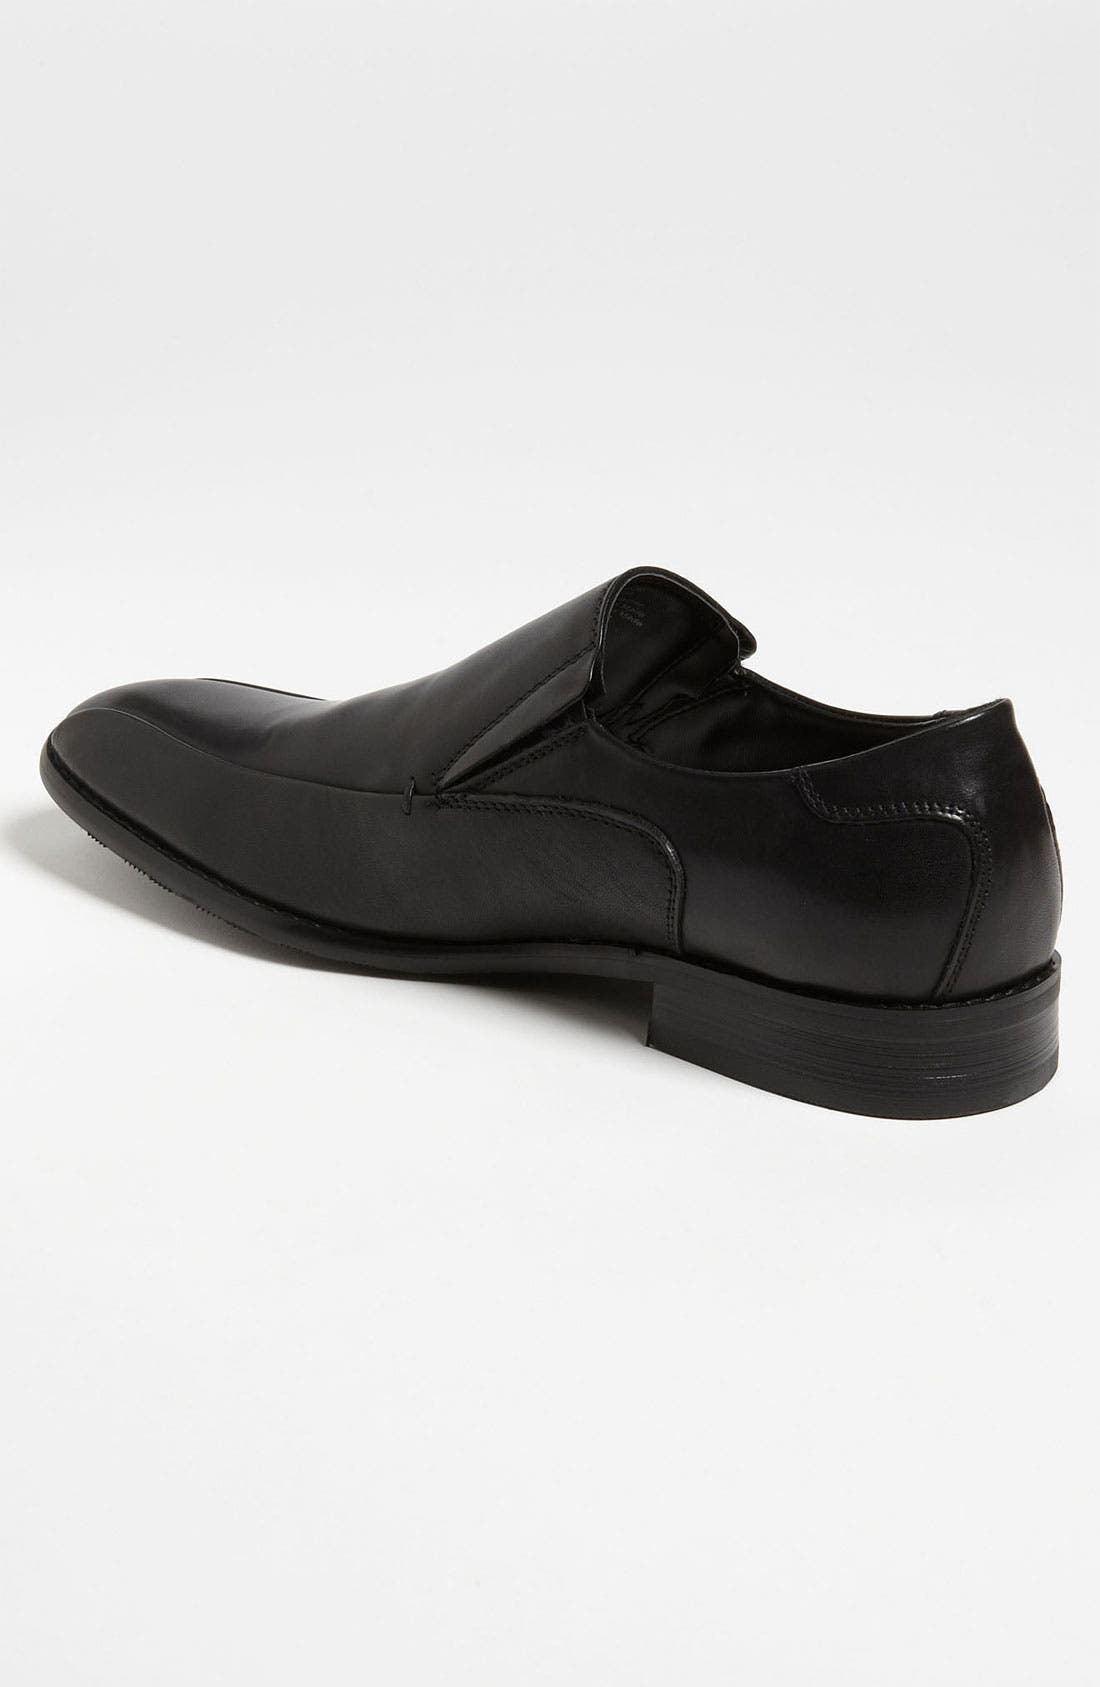 Alternate Image 2  - Kenneth Cole Reaction 'In Focus' Venetian Loafer (Online Exclusive)